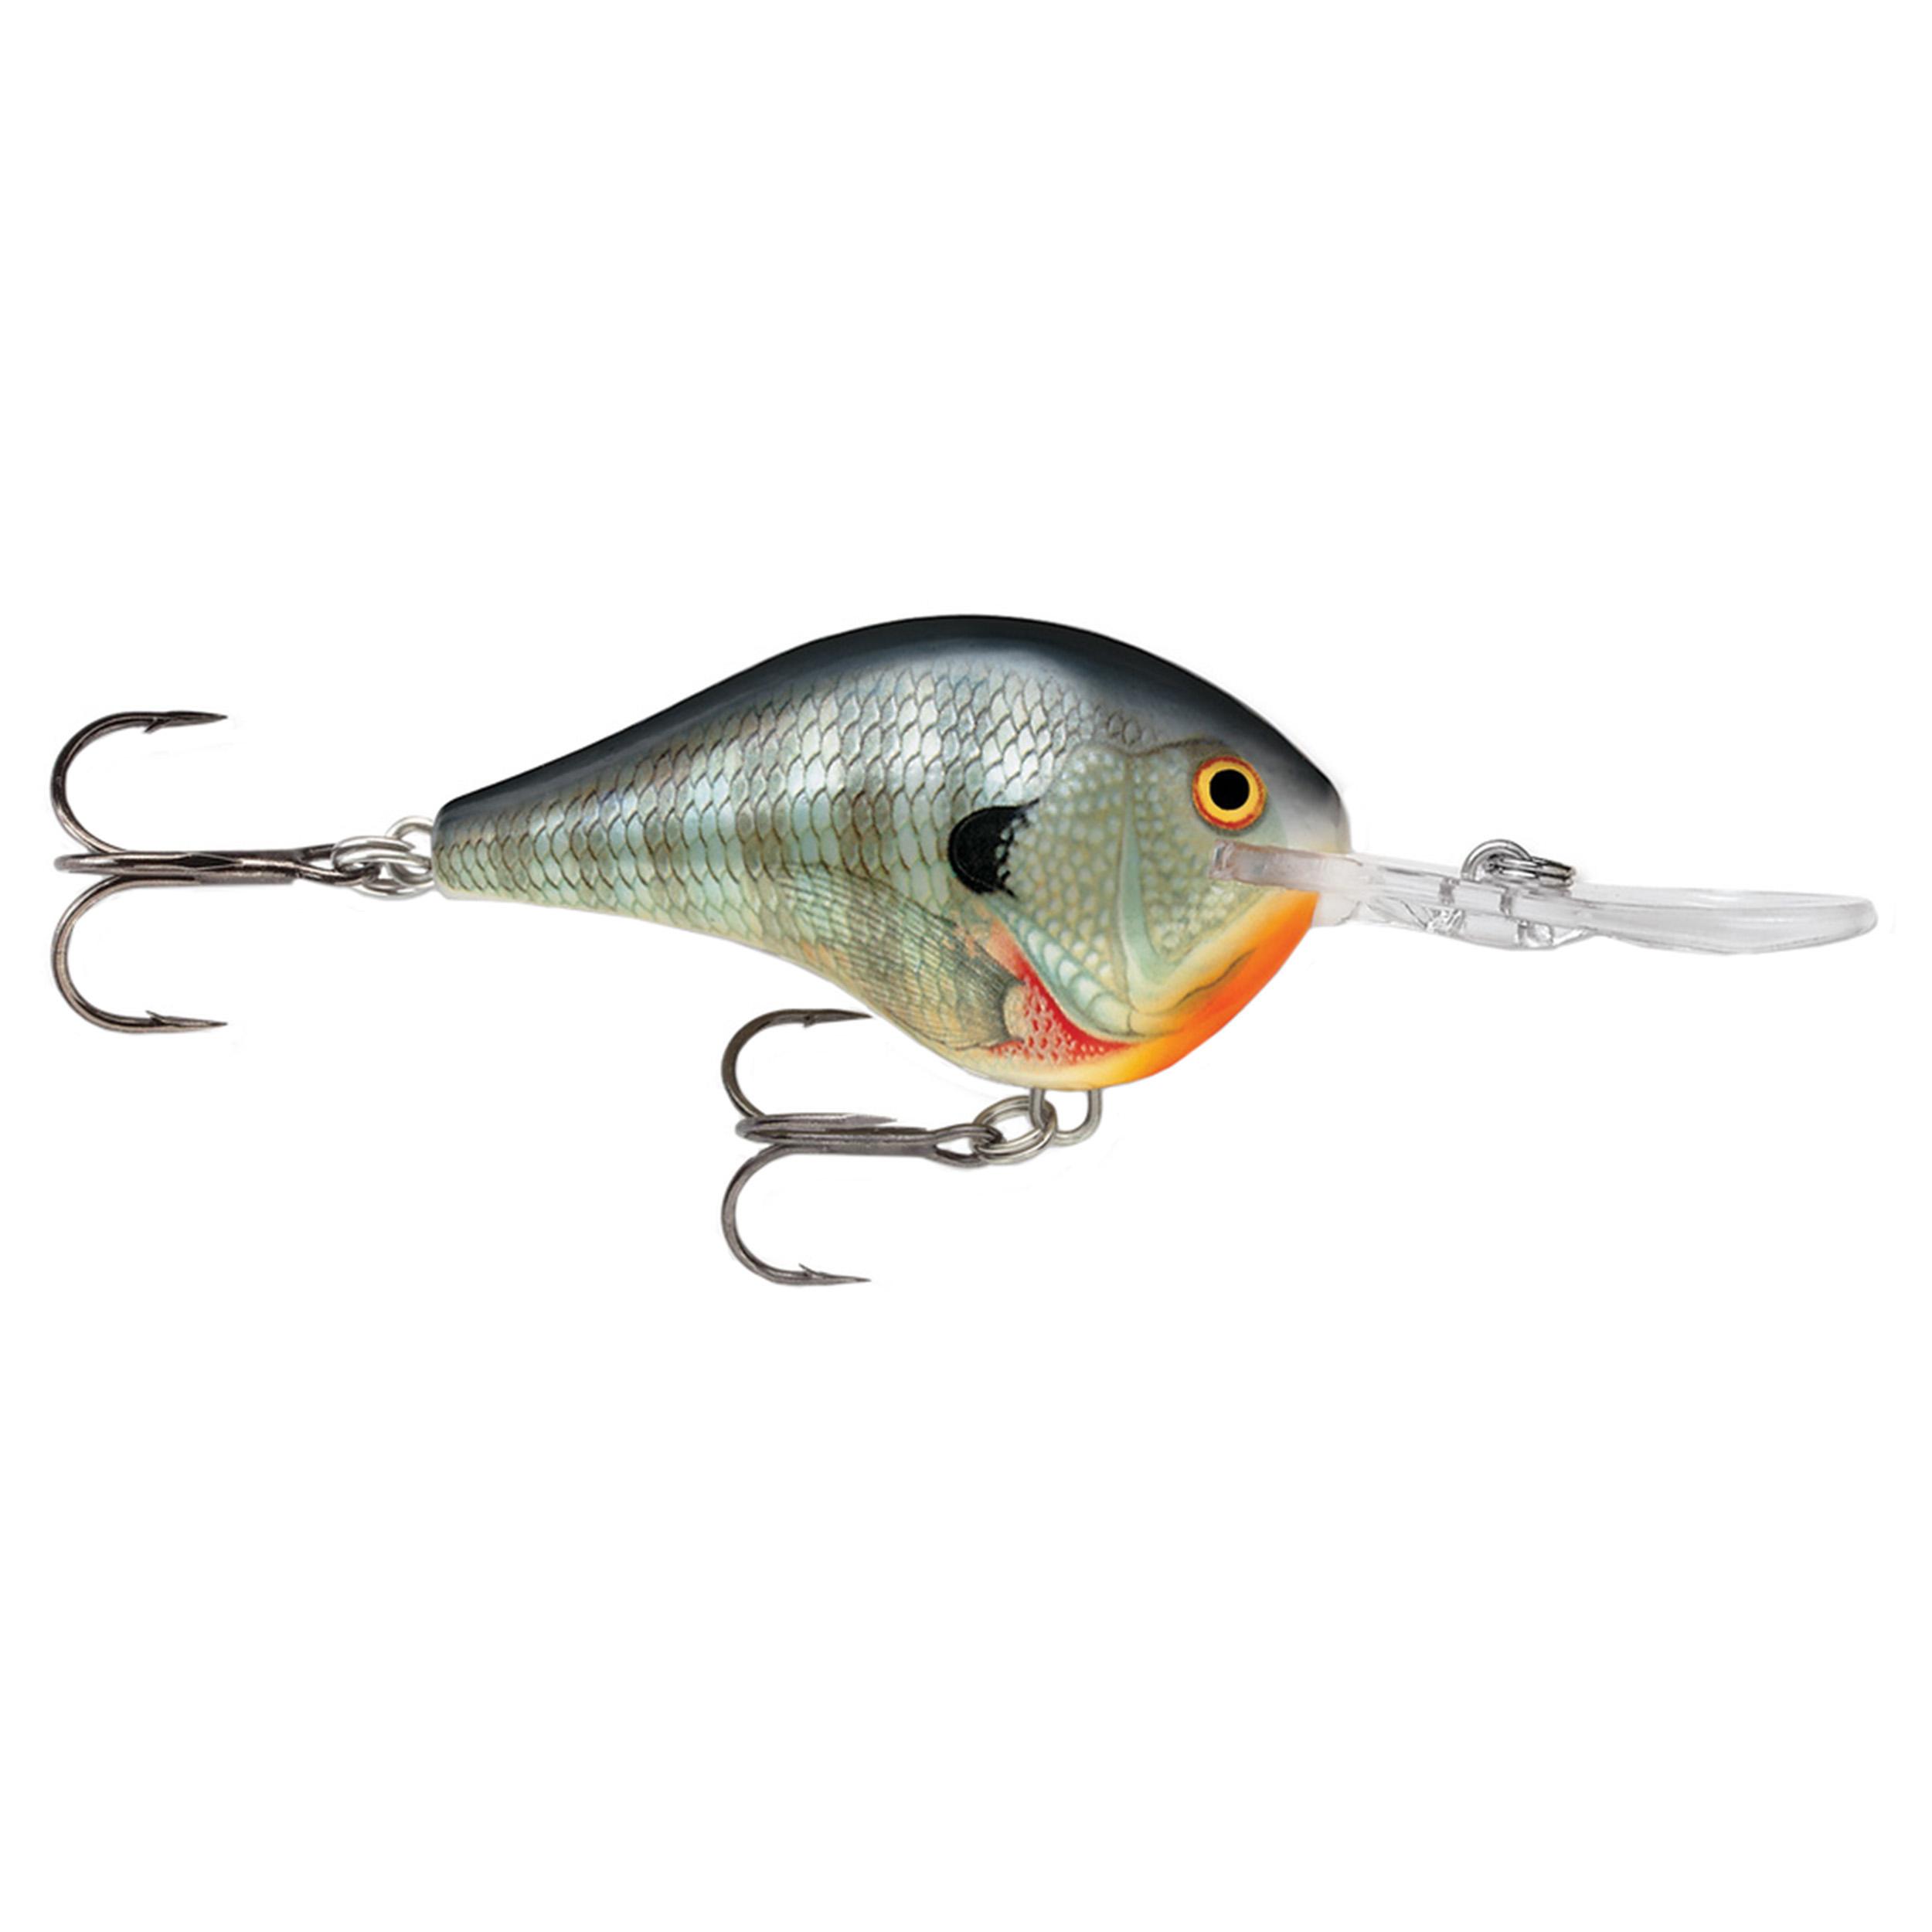 "Rapala Dives-To Series Custom Ink Lure Size 16, 2 3 4"" Length, 16' Depth, 2 Number 3 Treble Hooks, Bluegill, Per 1 by Rapala"